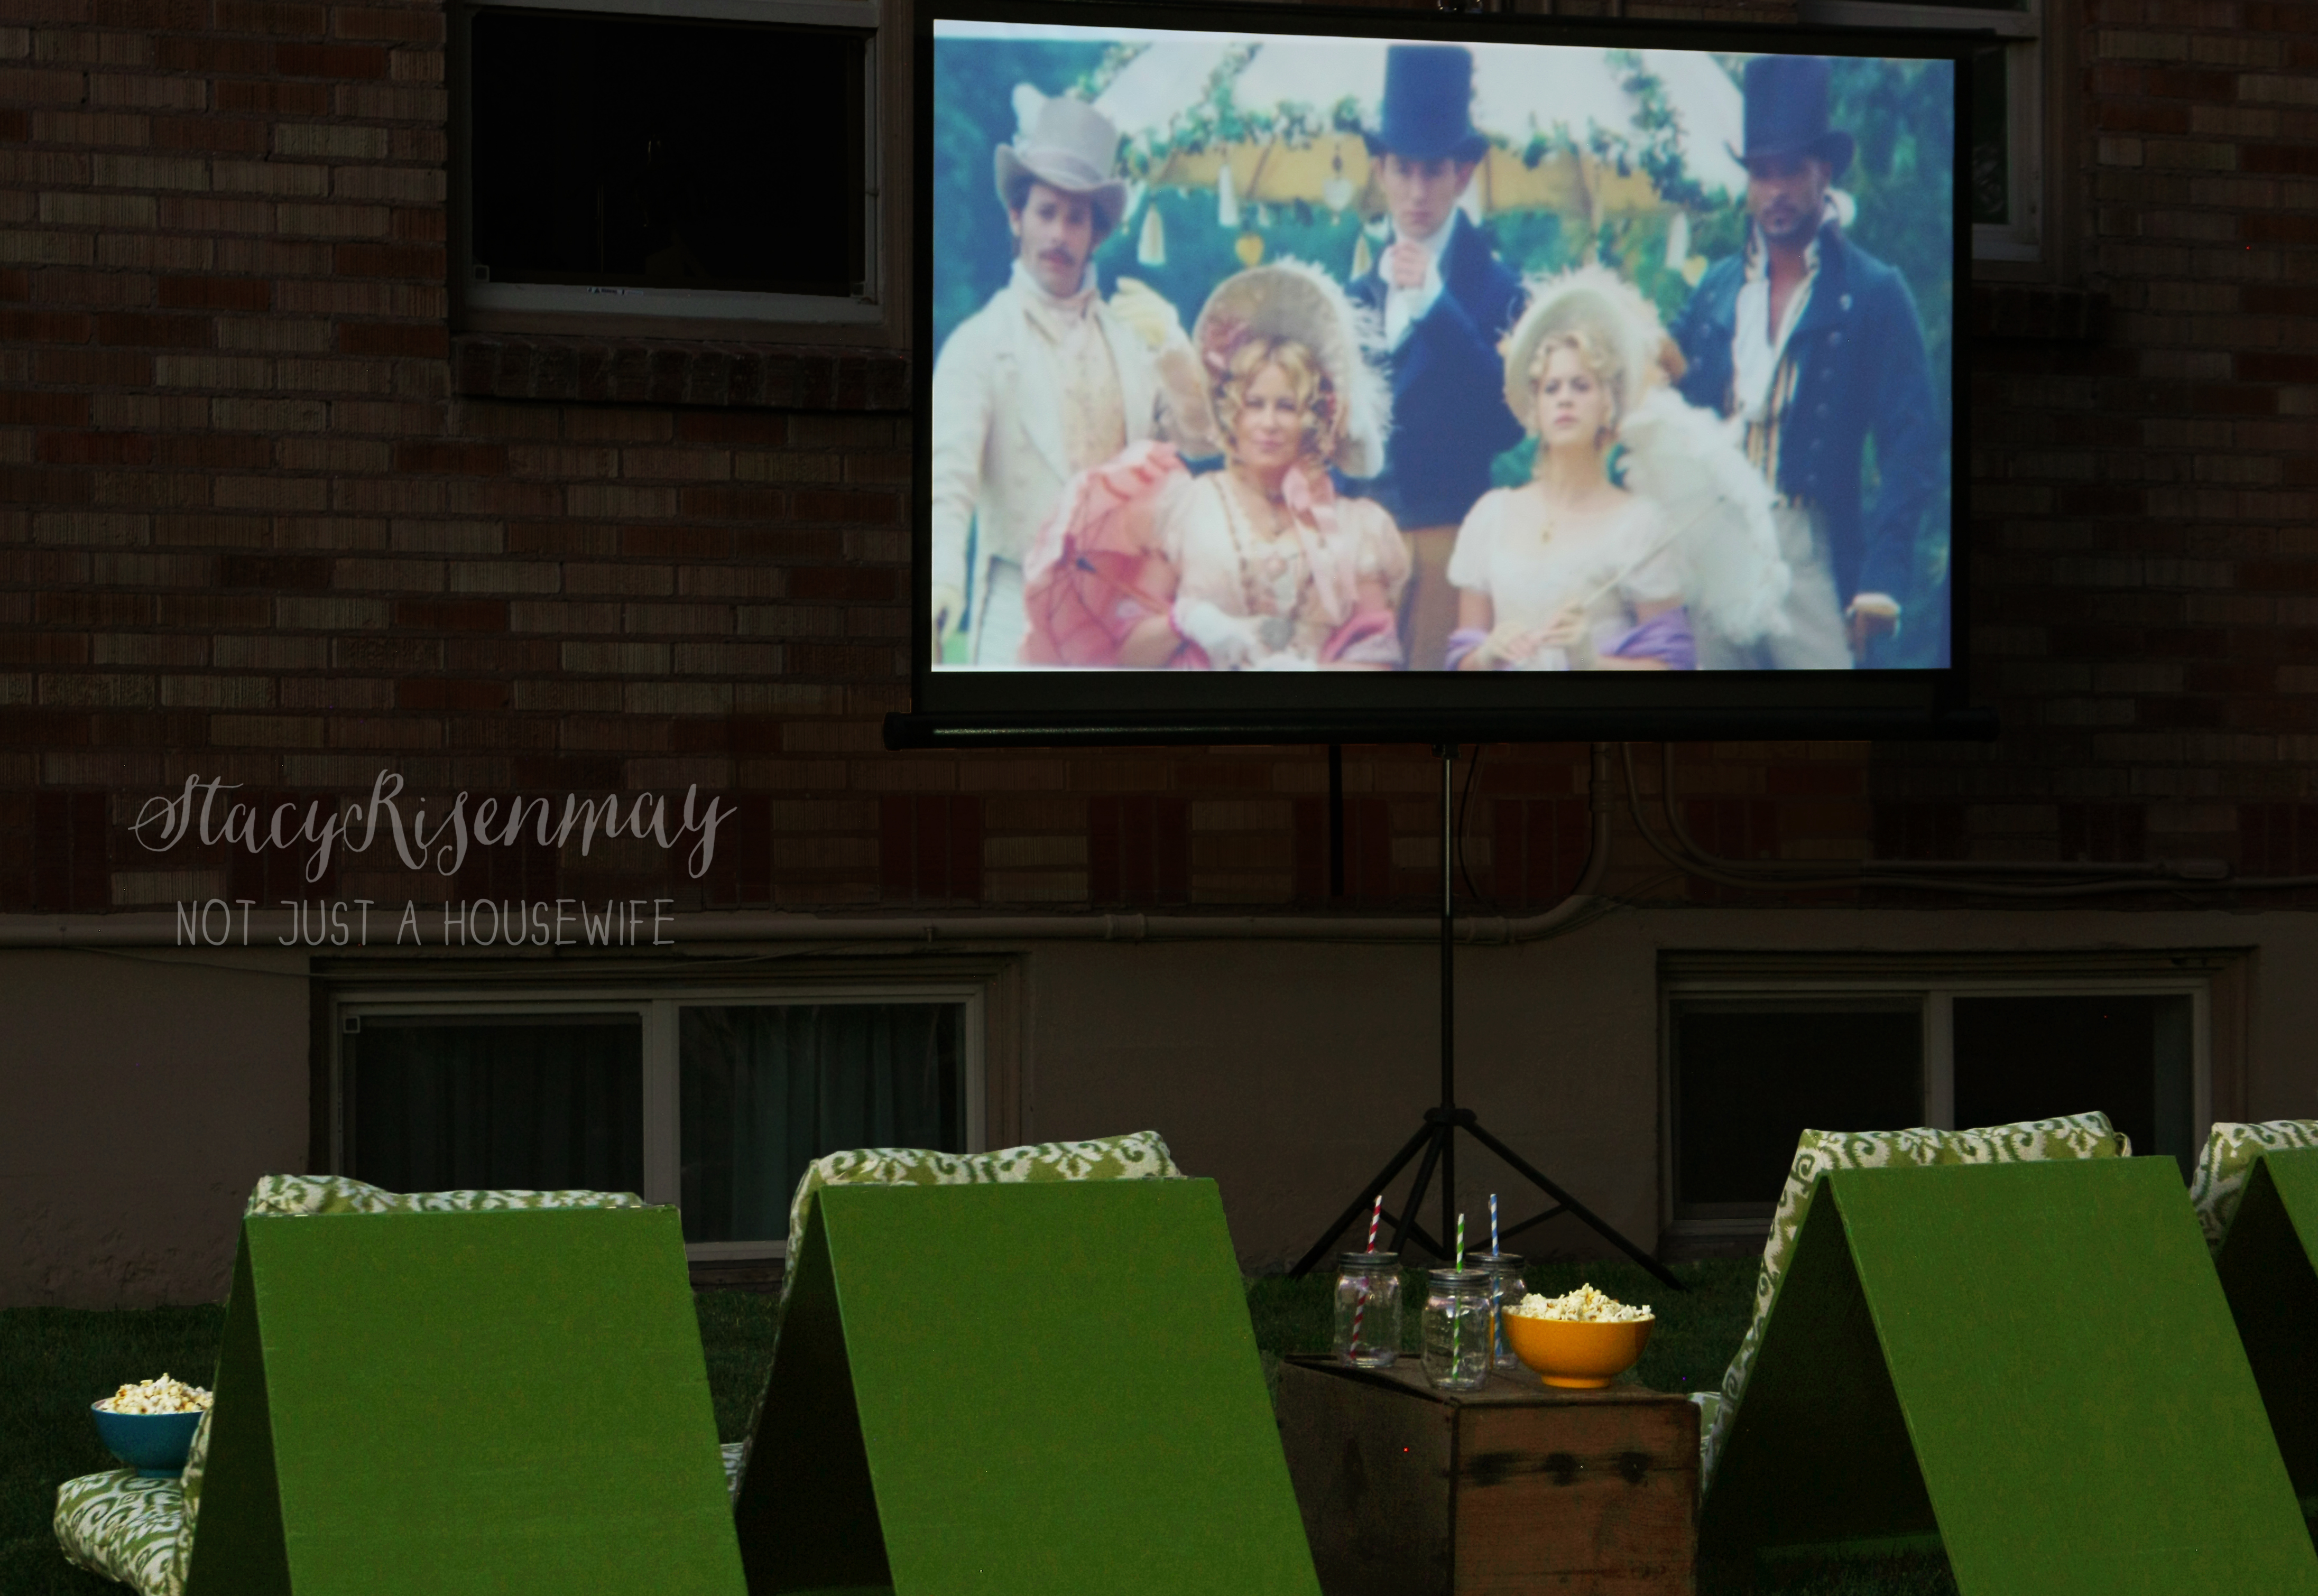 Outdoor movie theater seating stacy risenmay for Diy backyard theater seats